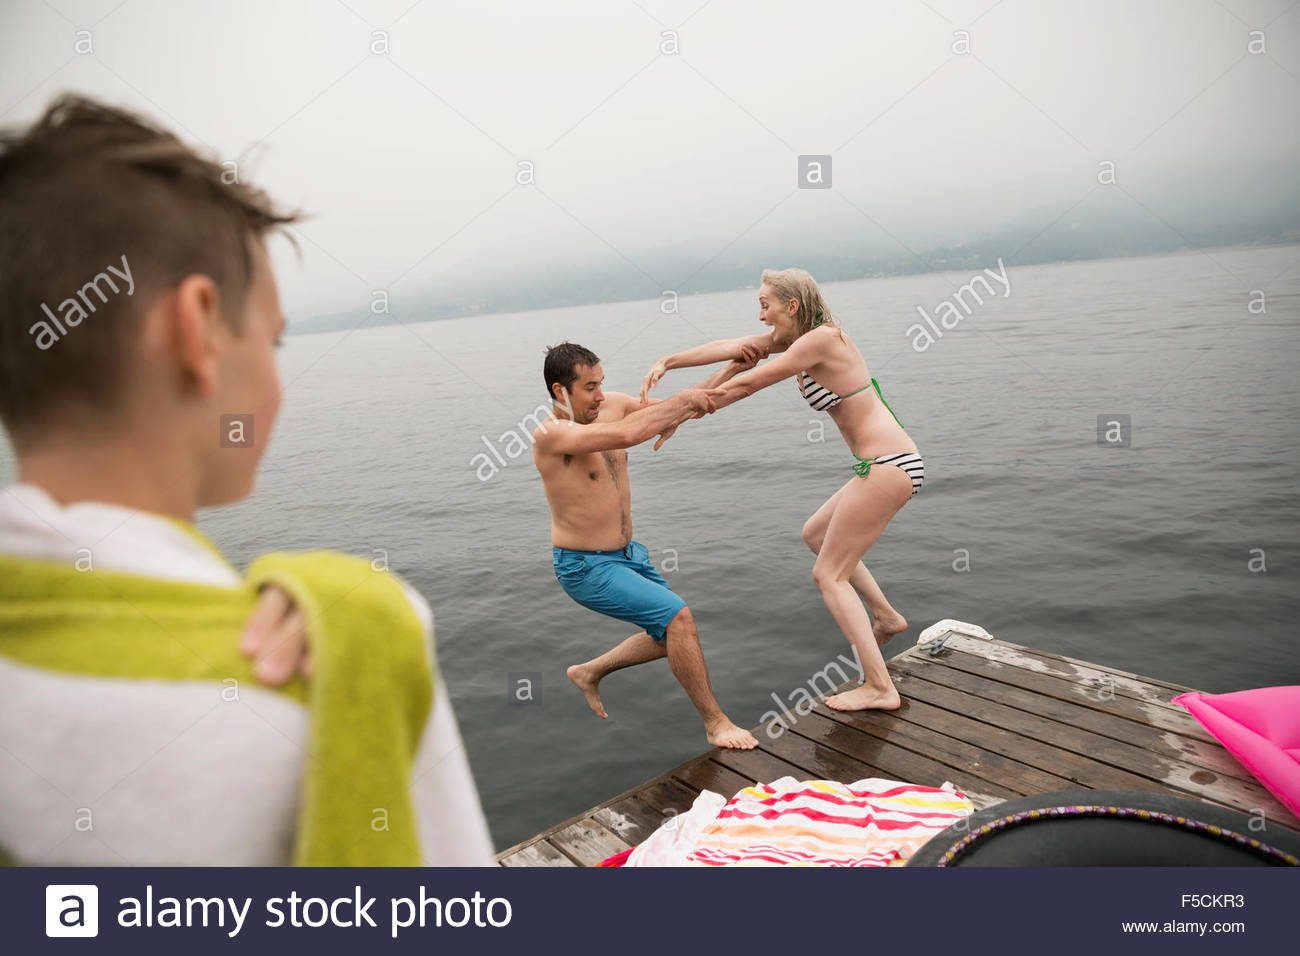 Playful woman pushing man off lake dock - Stock Image